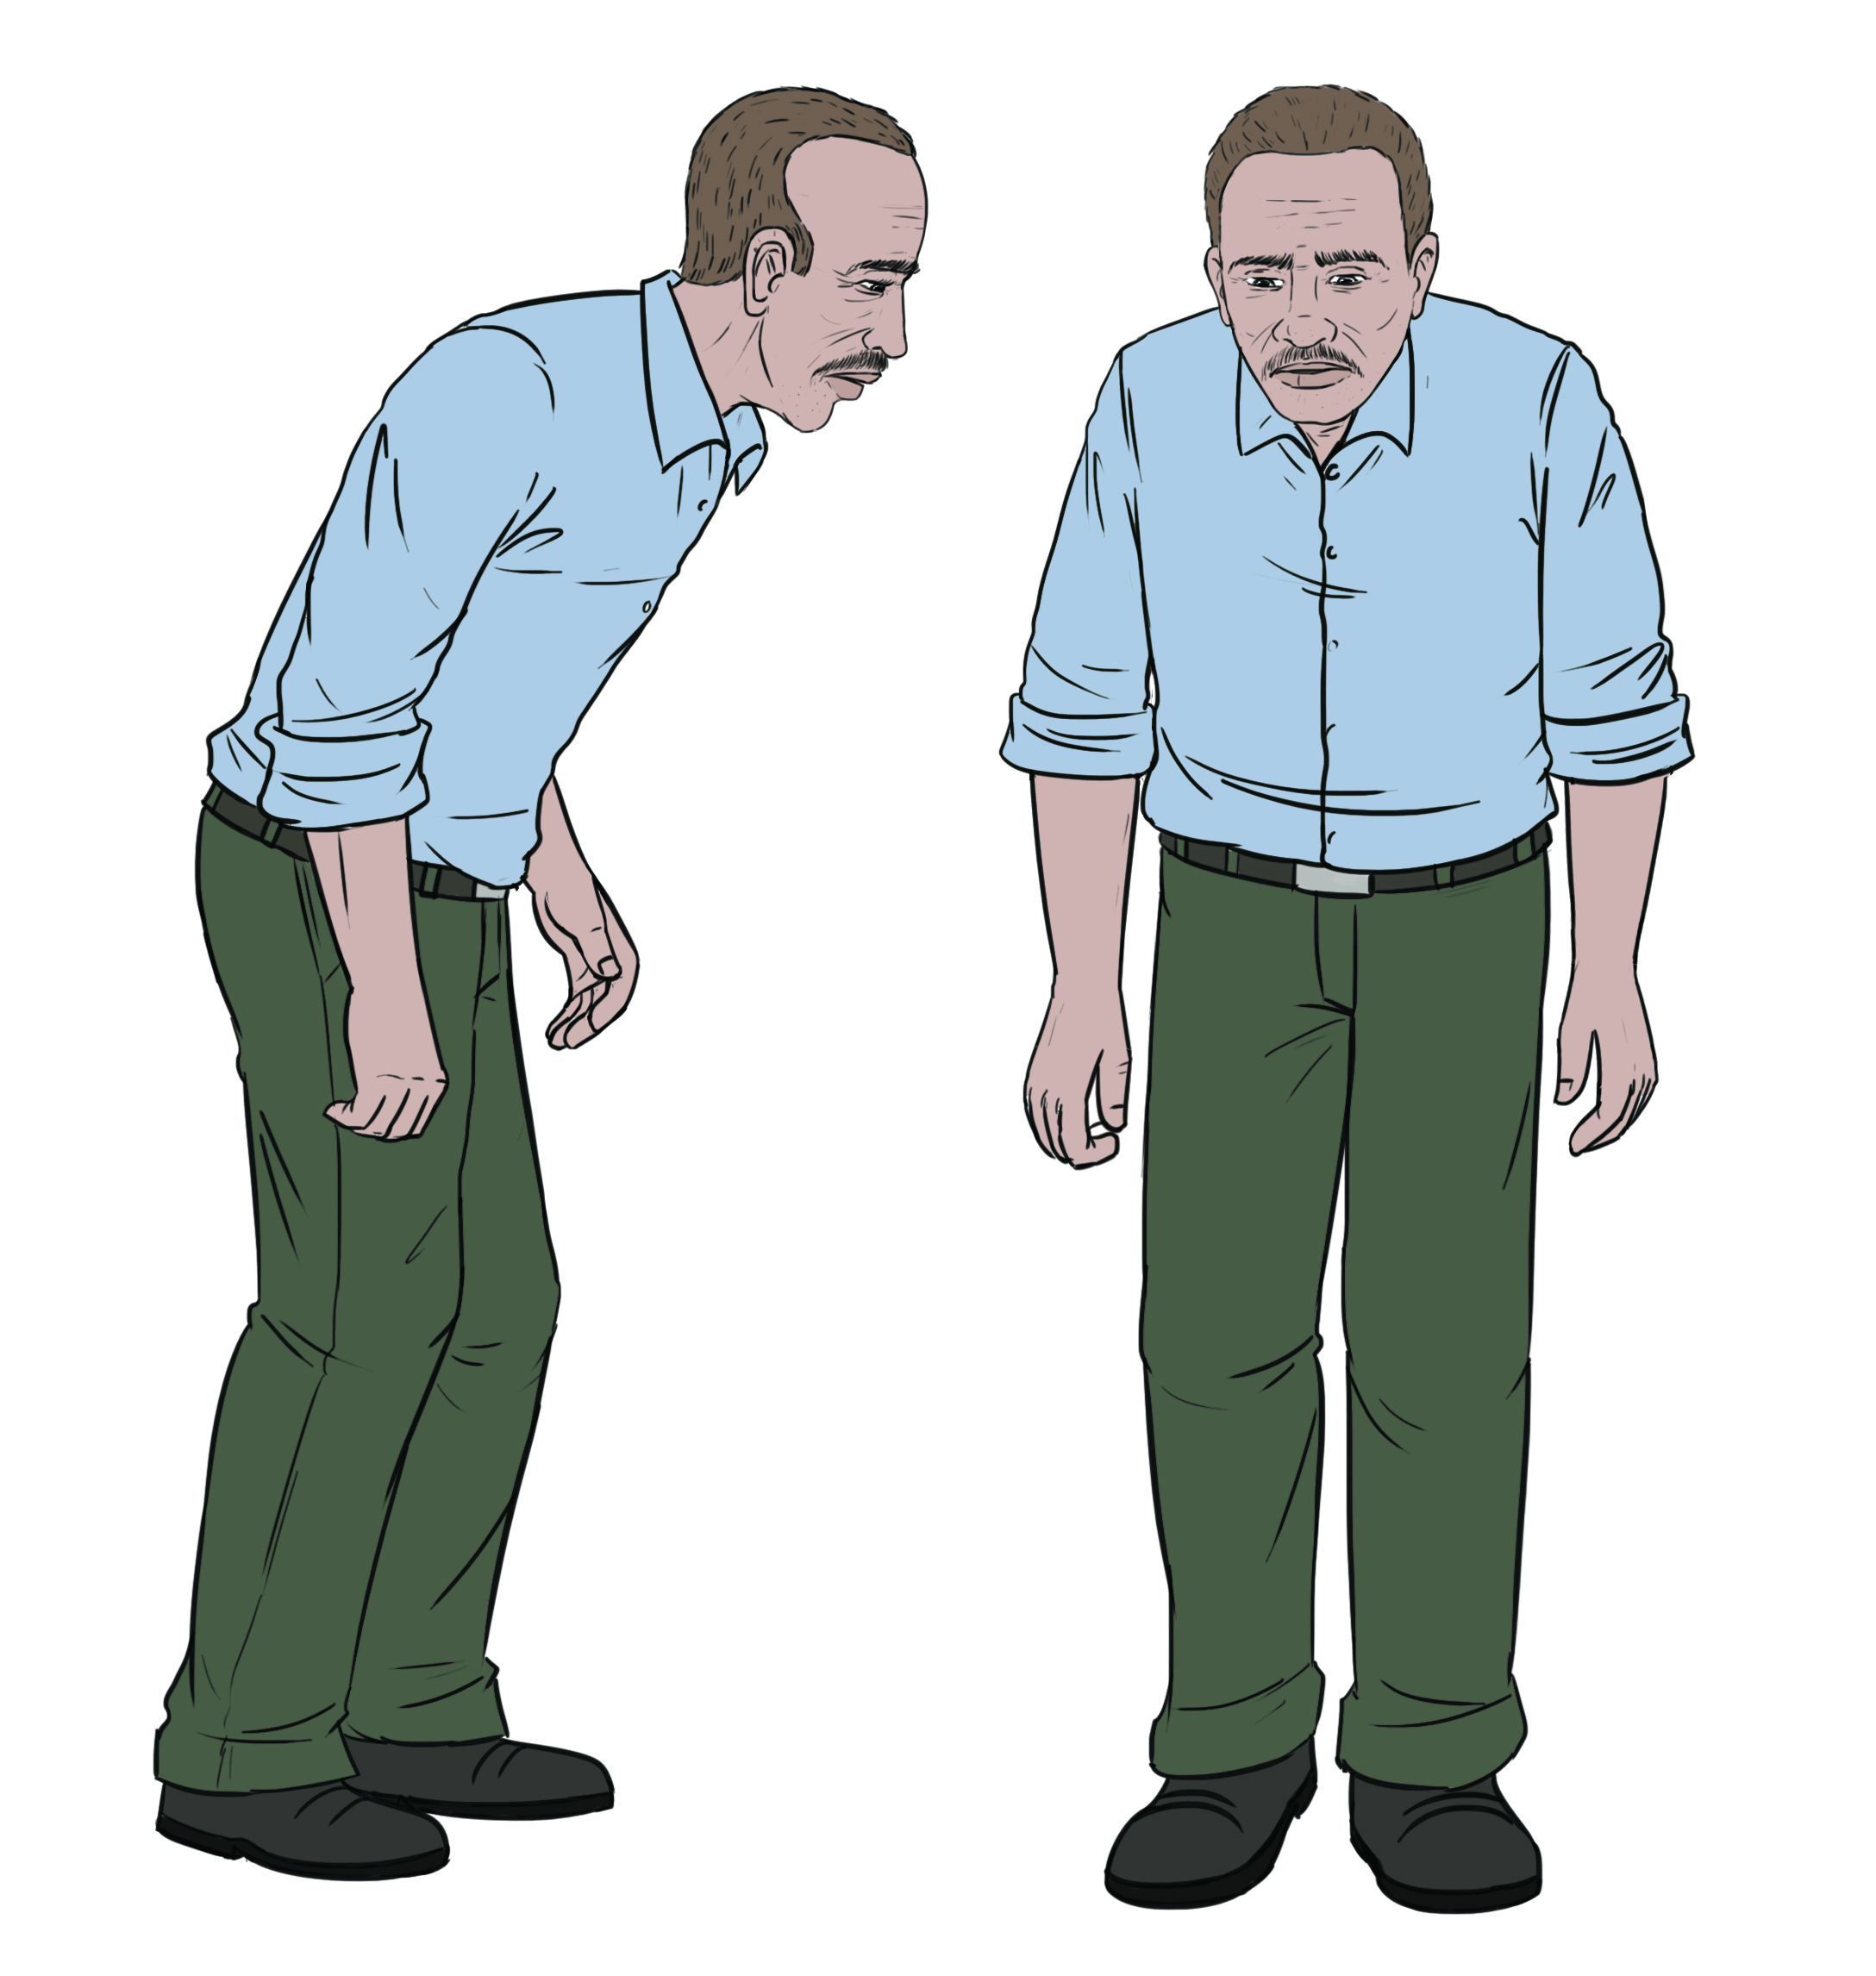 Illustration shows a hunched man with stiff arms and a shuffling walk.